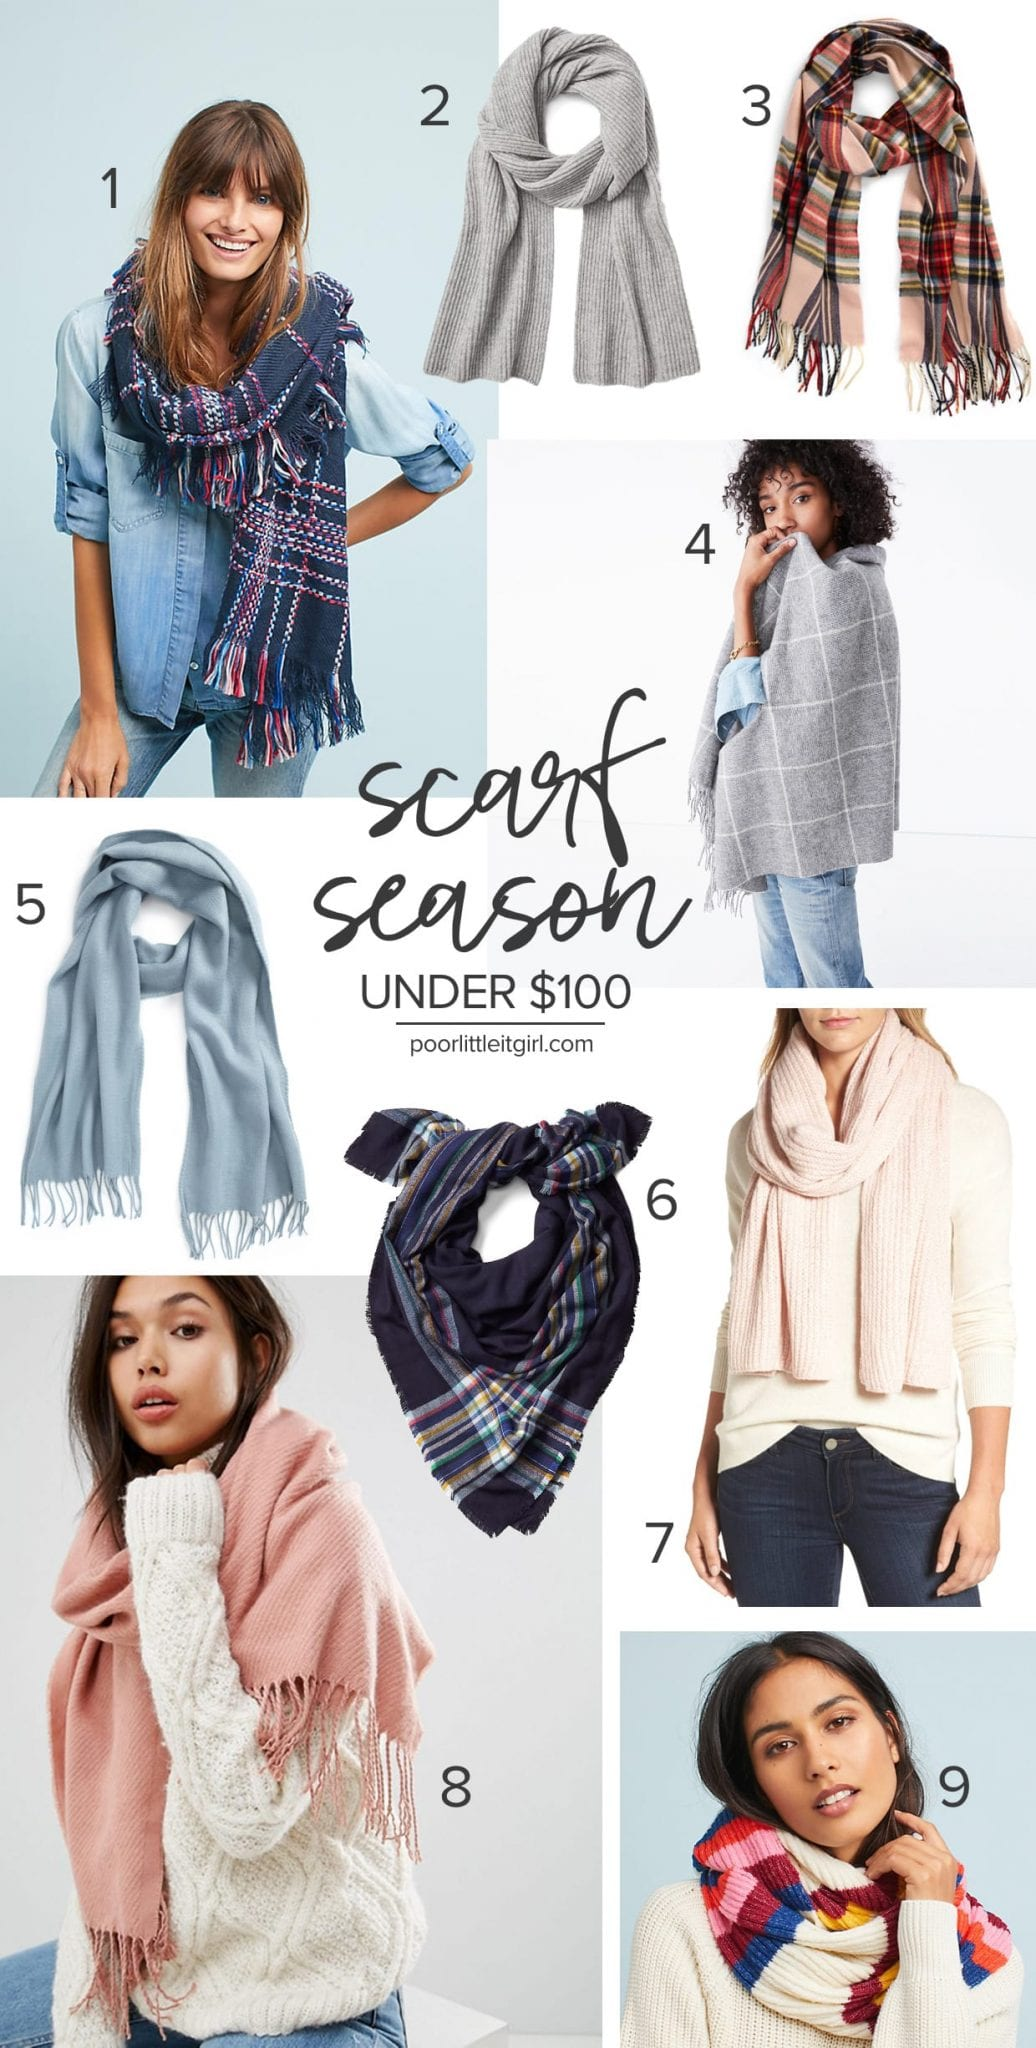 fb7864cce4a Scarf Season - Best Scarves Under  100 - Poor Little It Girl